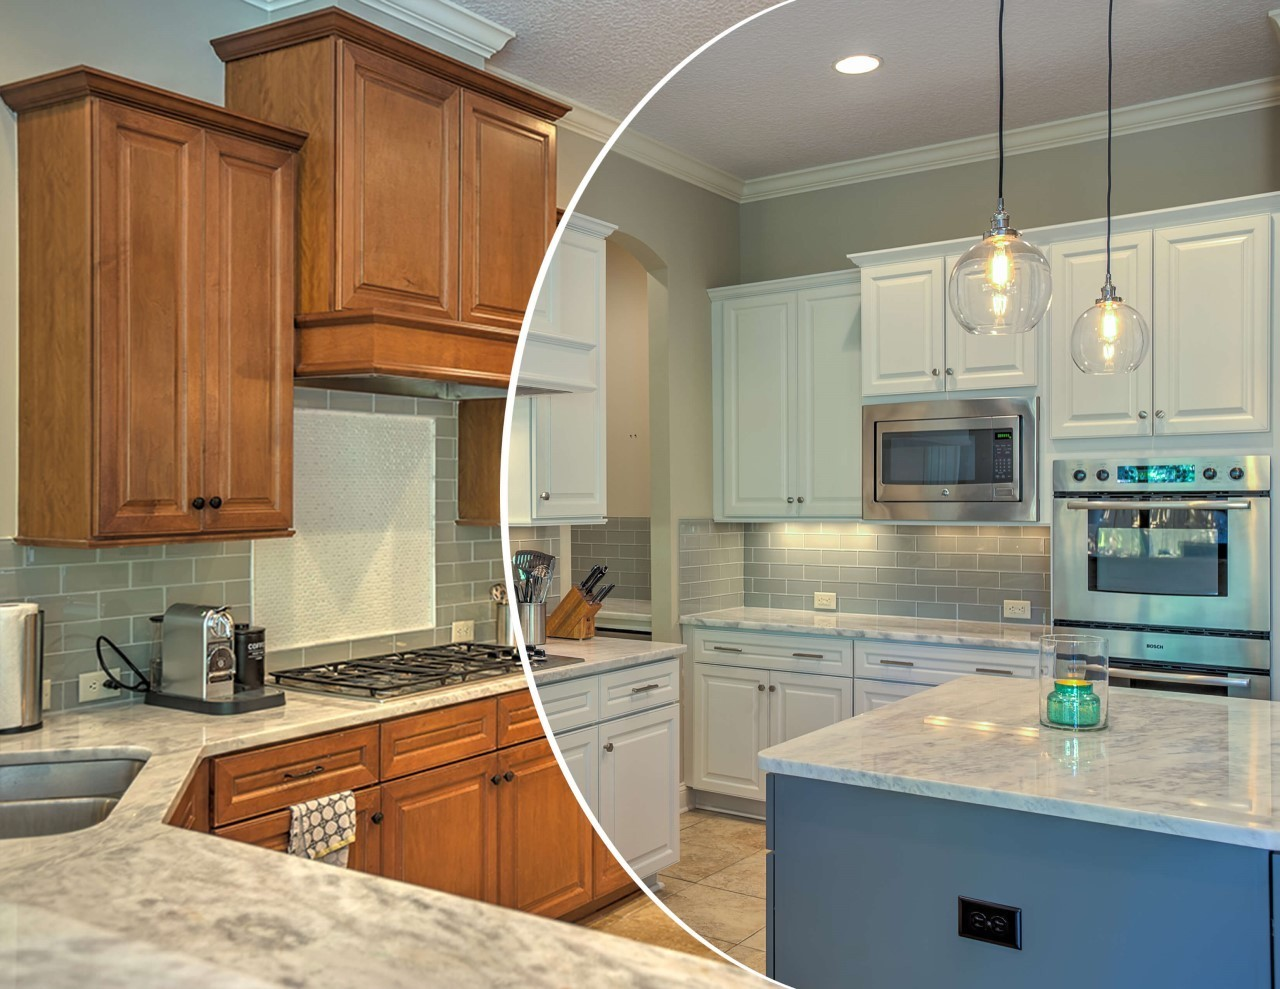 Cabinet painting services in Lancaster OH